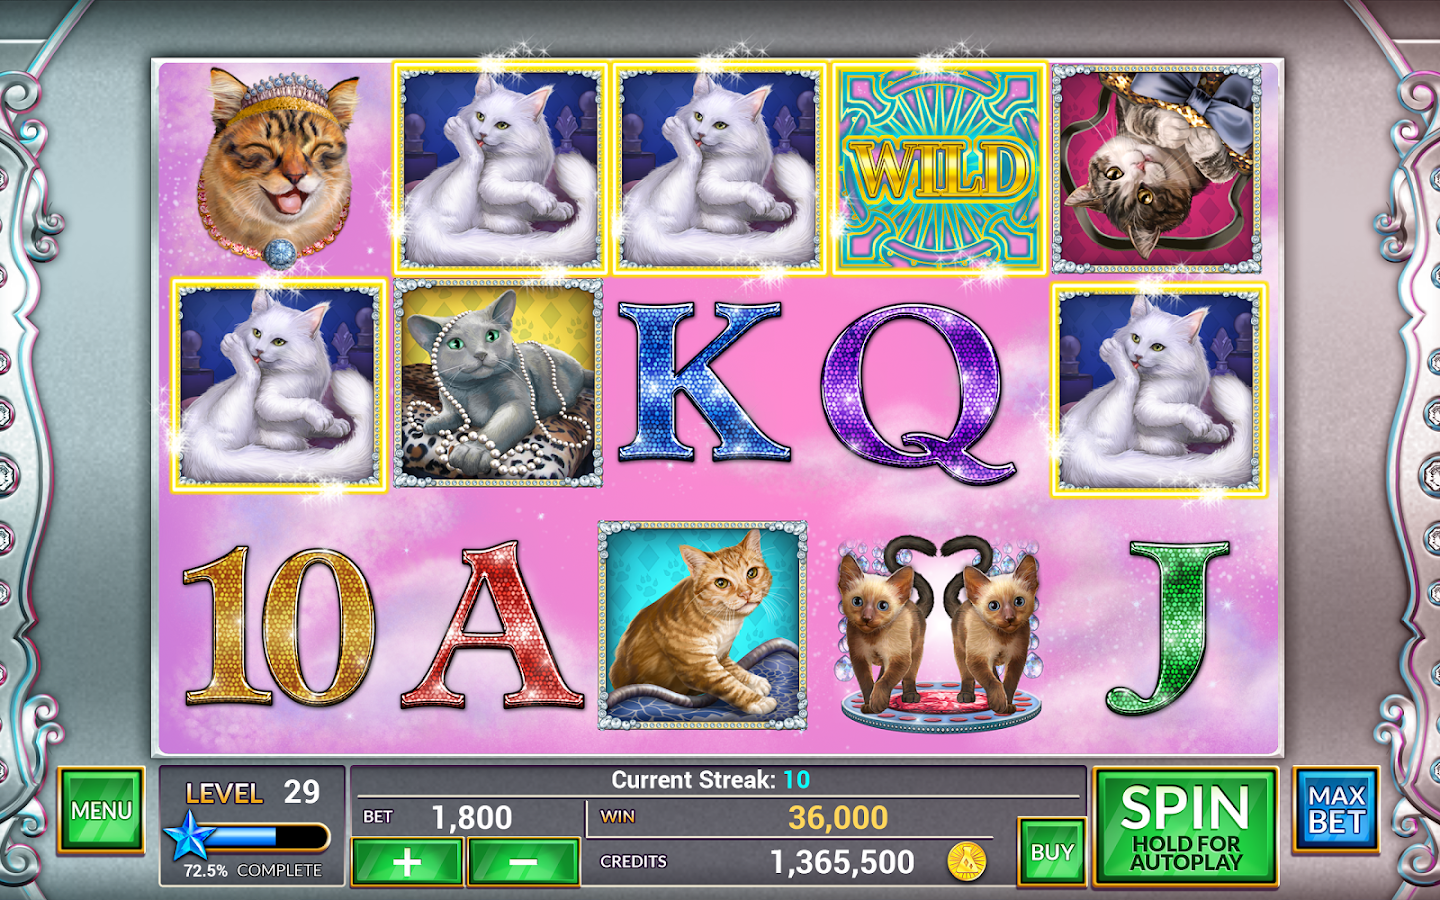 Robin the Good Slots - Read the Review and Play for Free